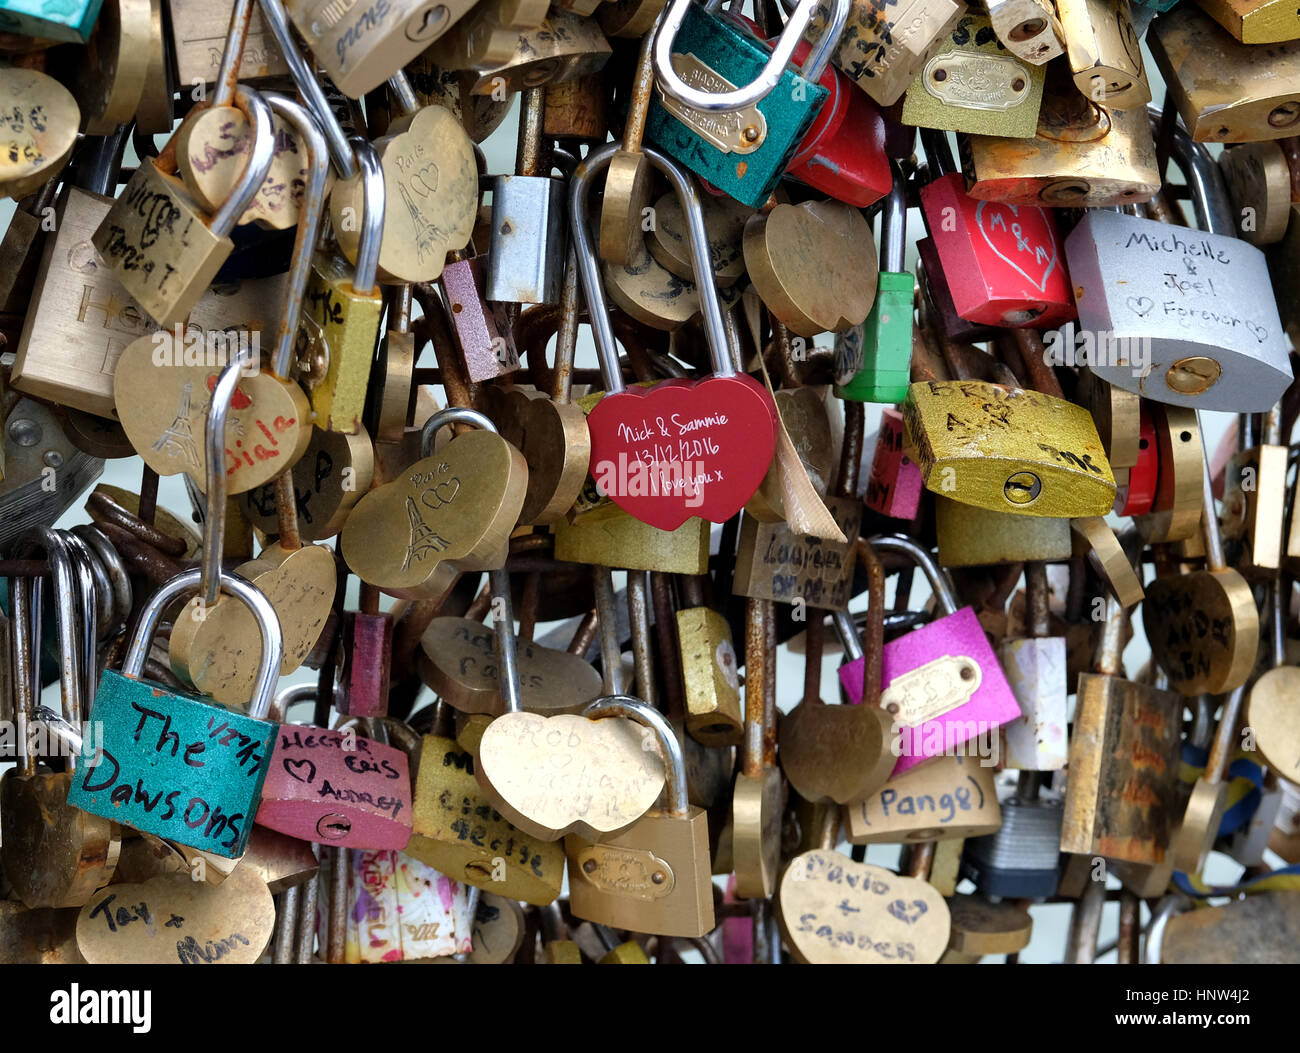 14/02/2017. Valentines Day, Love locks at the The Pont Neuf  in Paris, France. - Stock Image